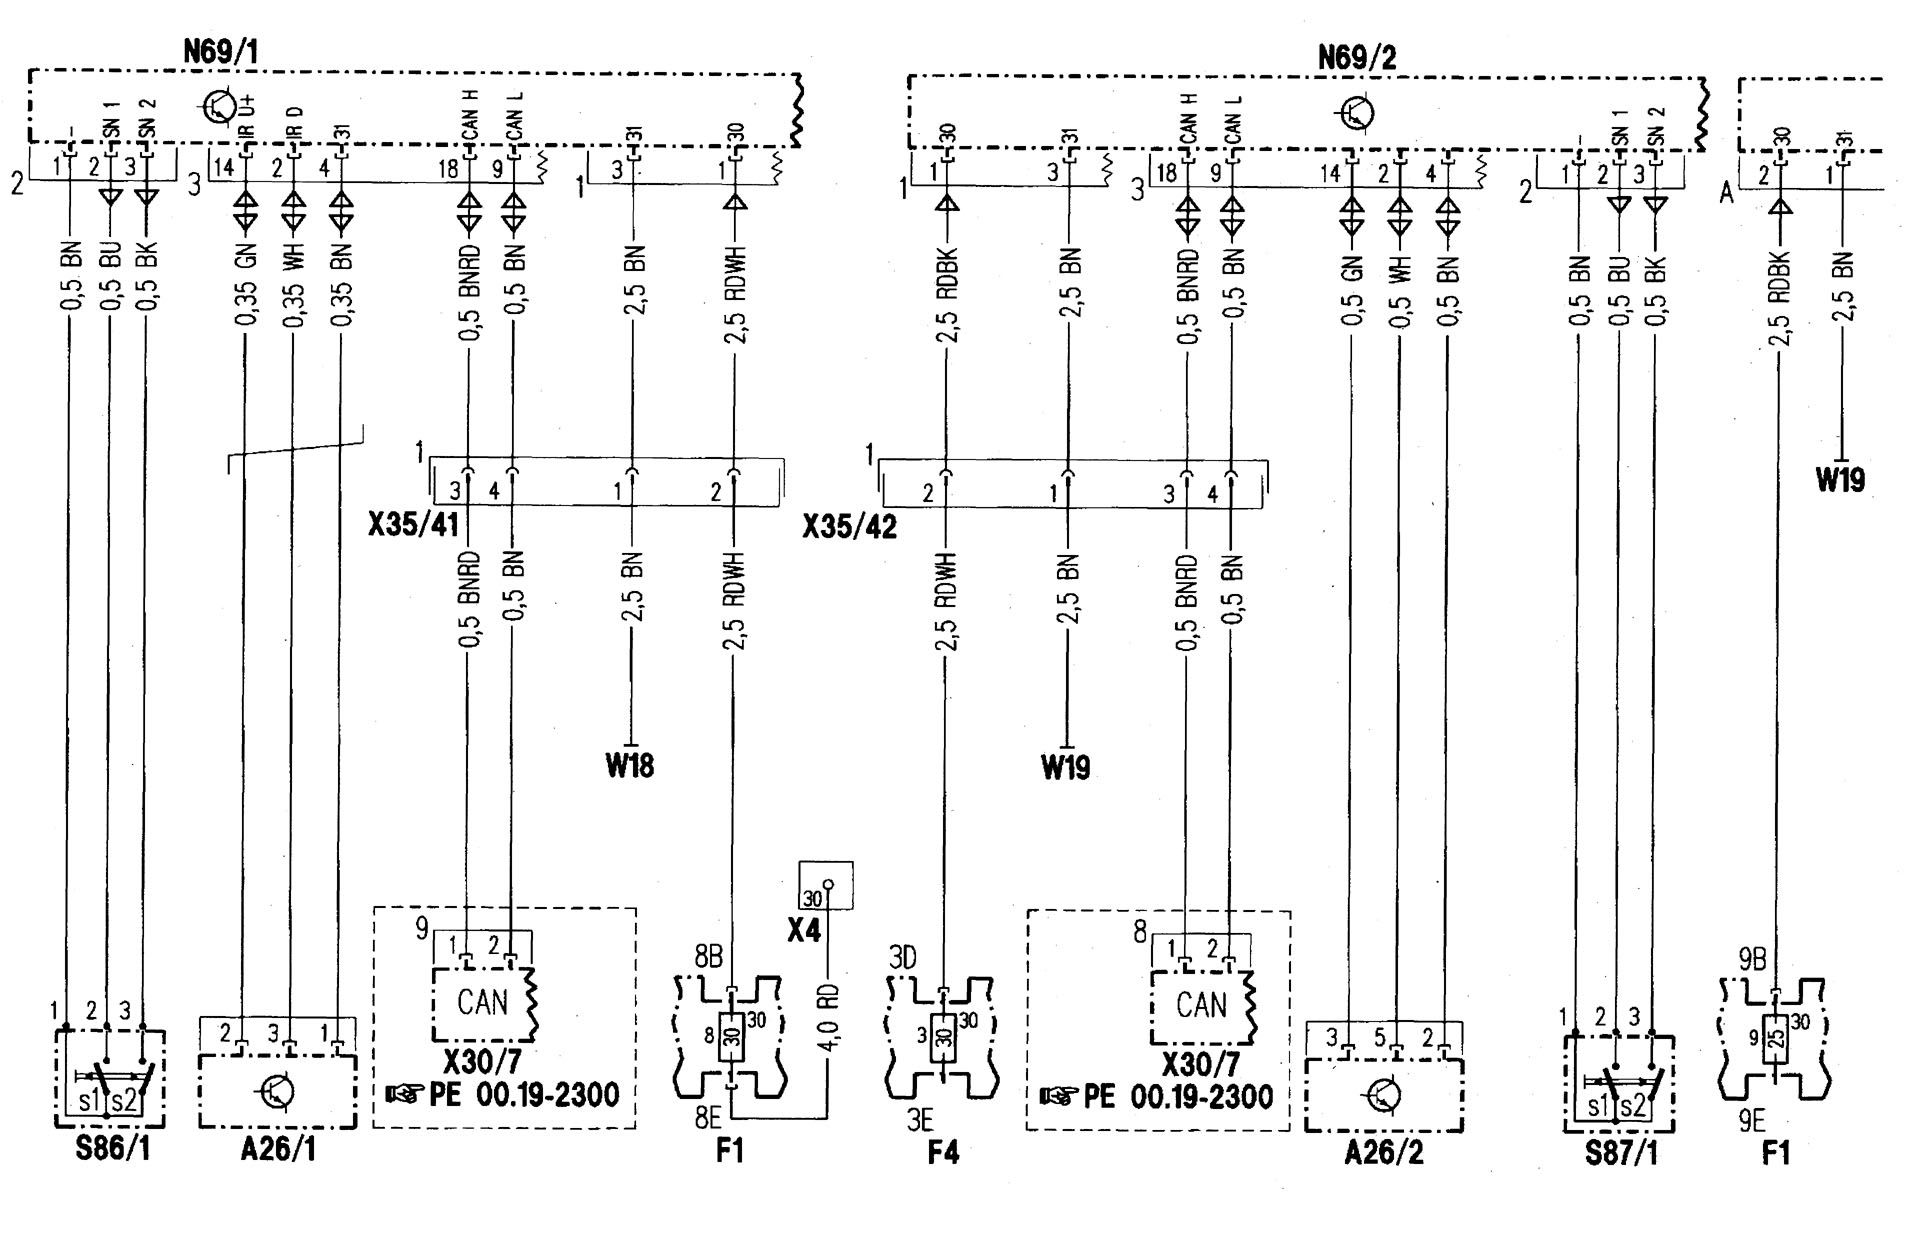 1998 Mercedes Ml320 Radio Wiring from www.carknowledge.info